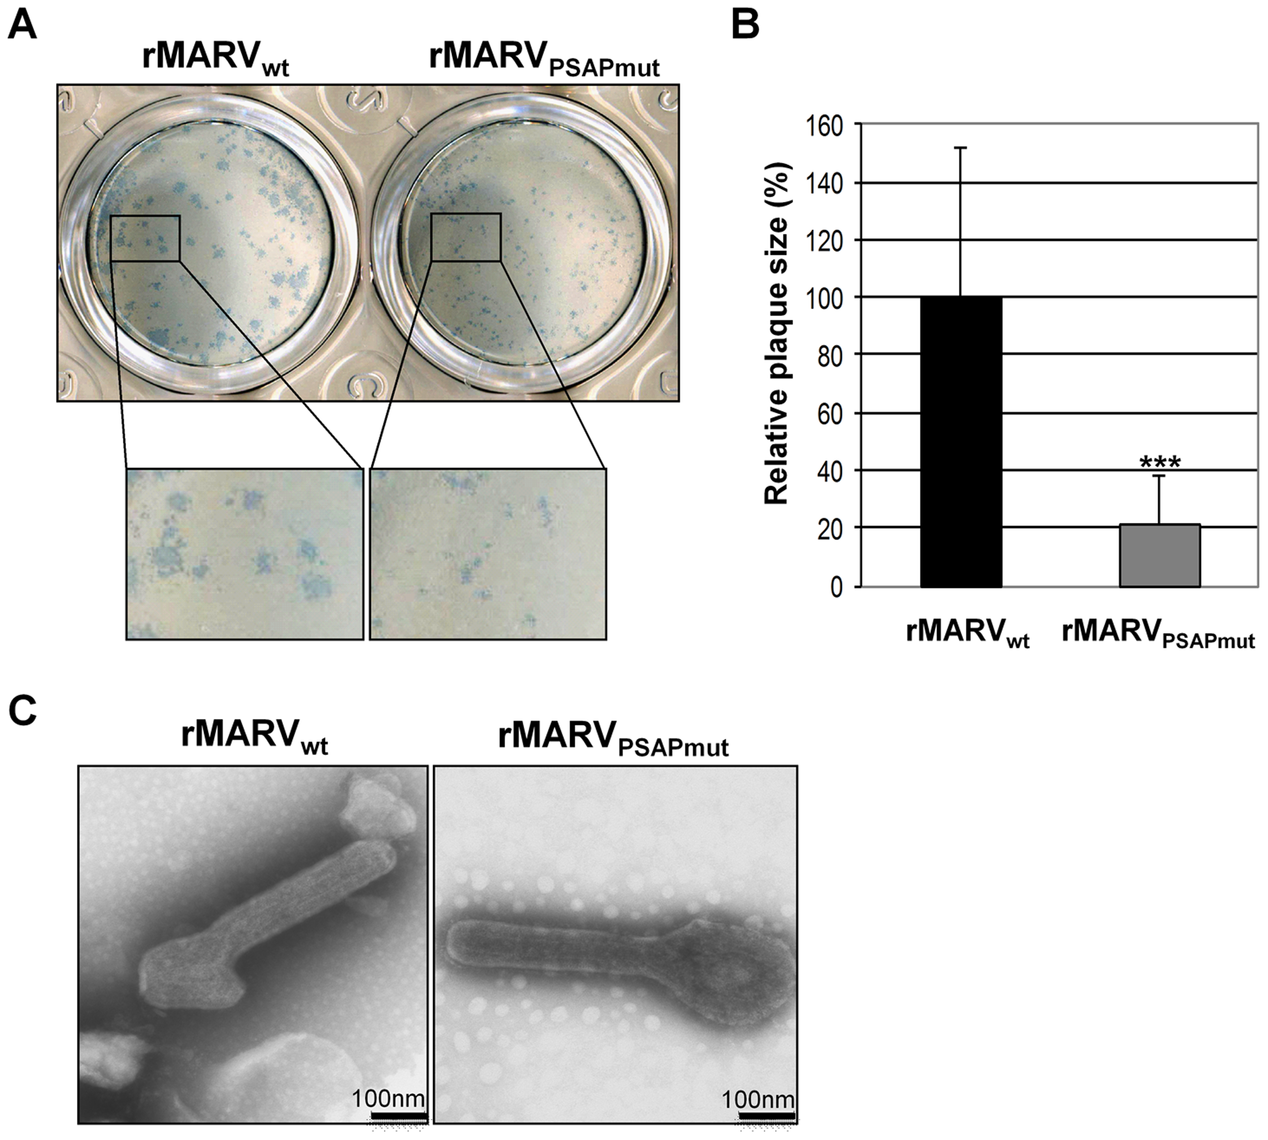 rMARV<sub>PSAPmut</sub> shows reduced plaque size but unaltered particle morphology.